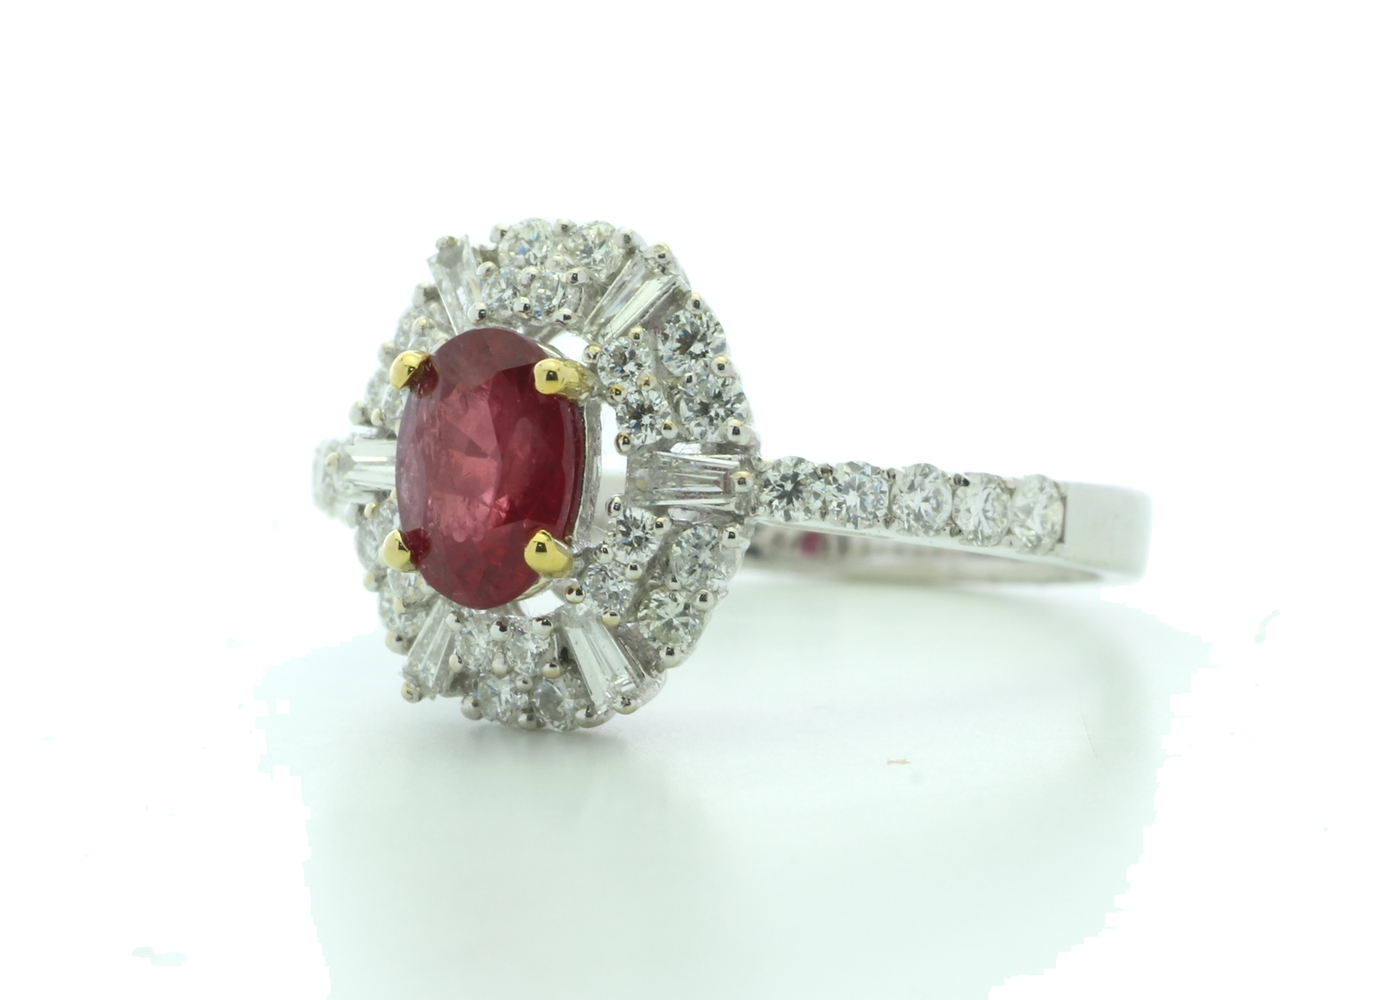 18k White Gold Cluster Diamond And Ruby Ring (R0.86) 0.80 Carats - Image 2 of 5